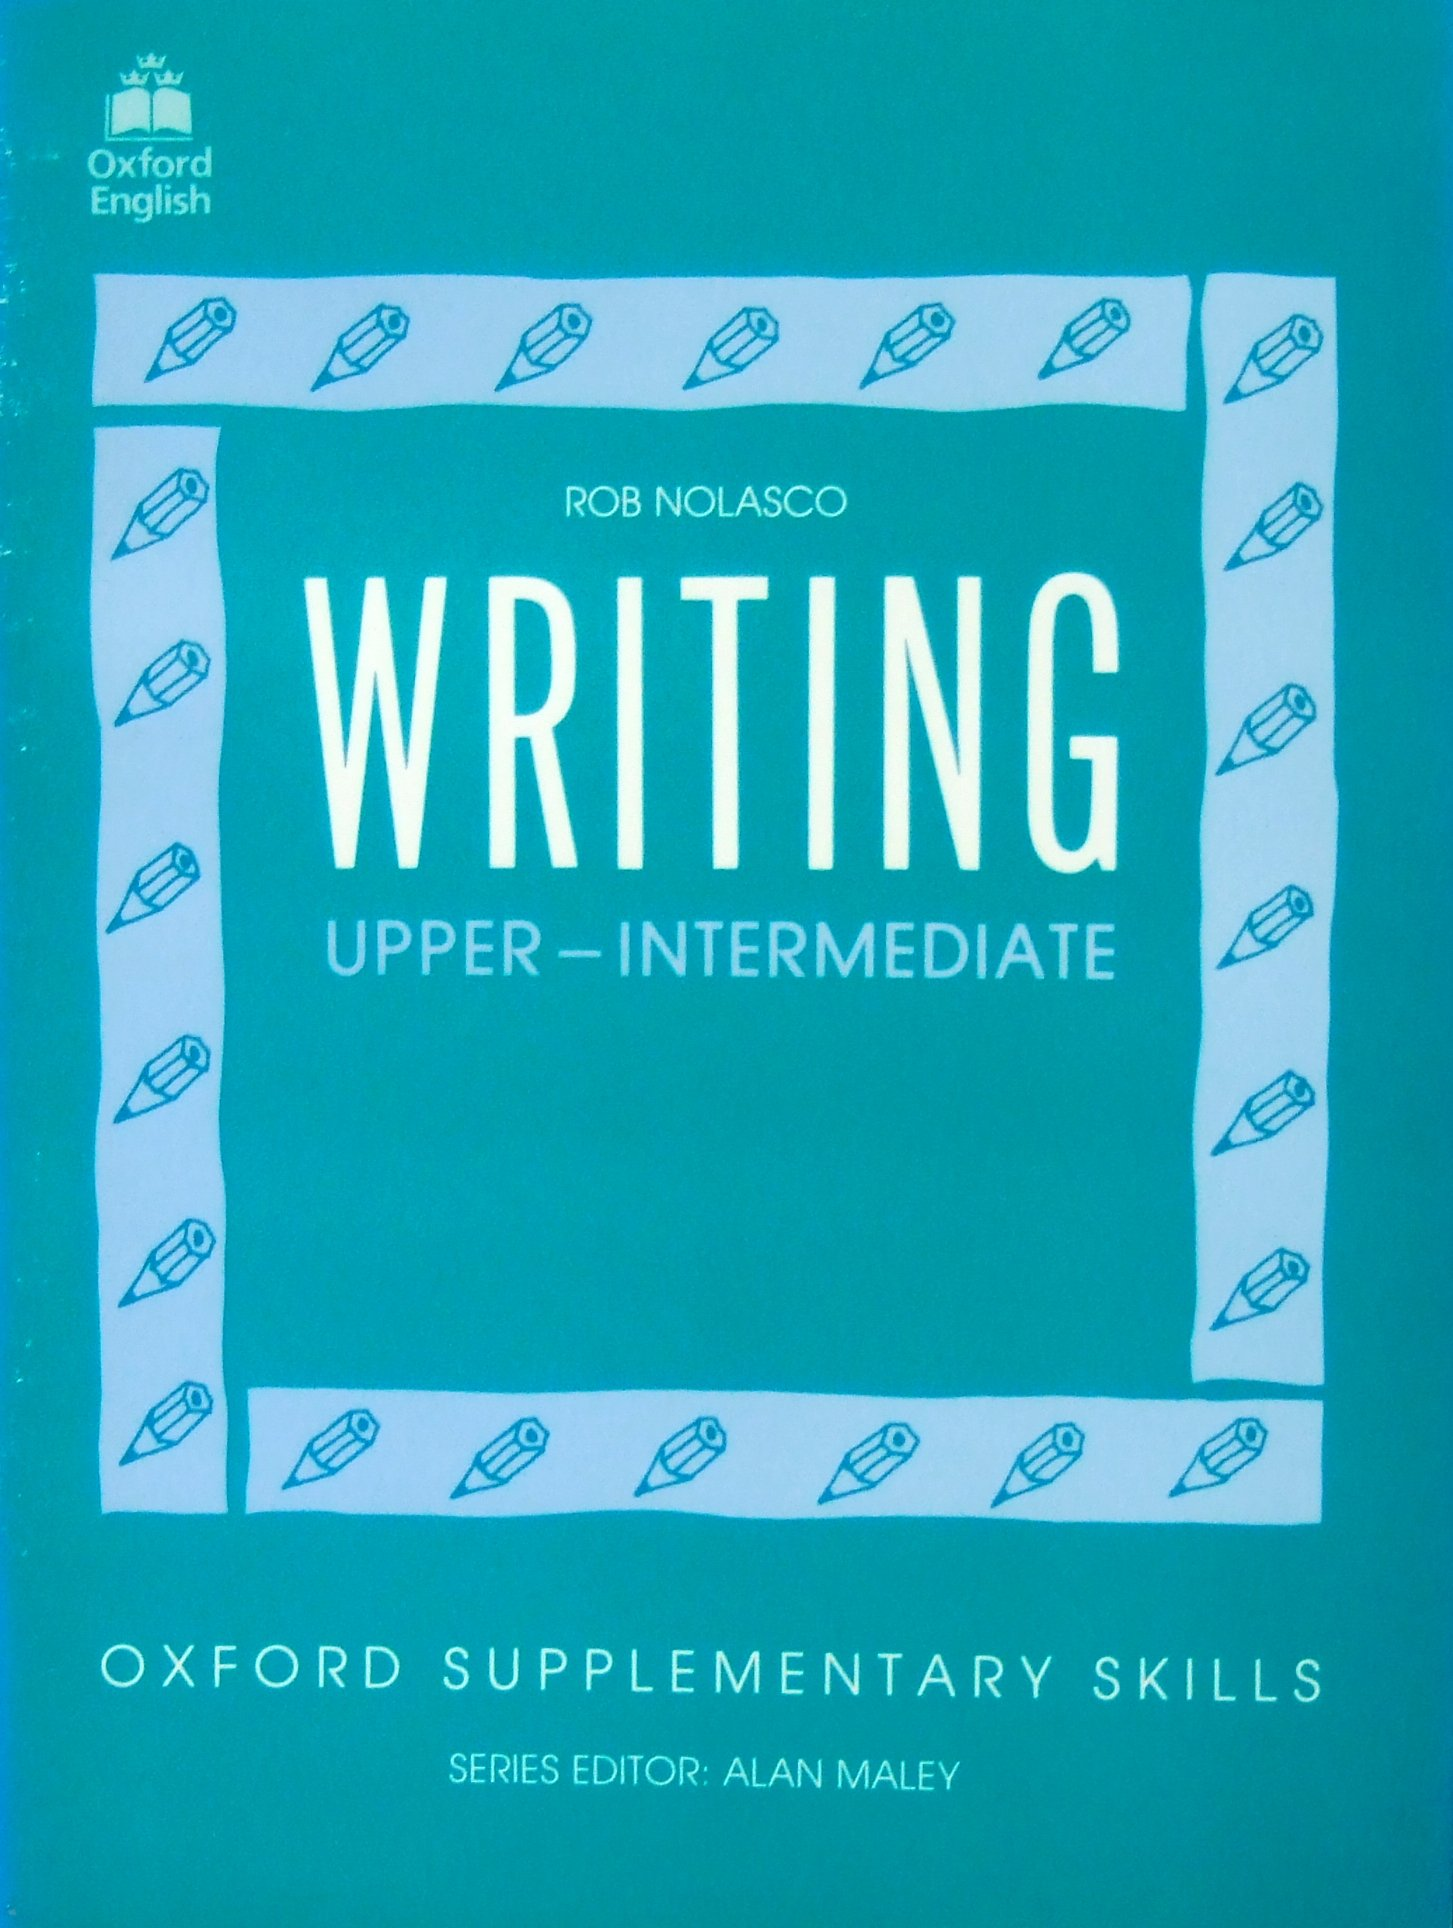 Oxford Supplementary Skills Reading Intermediate